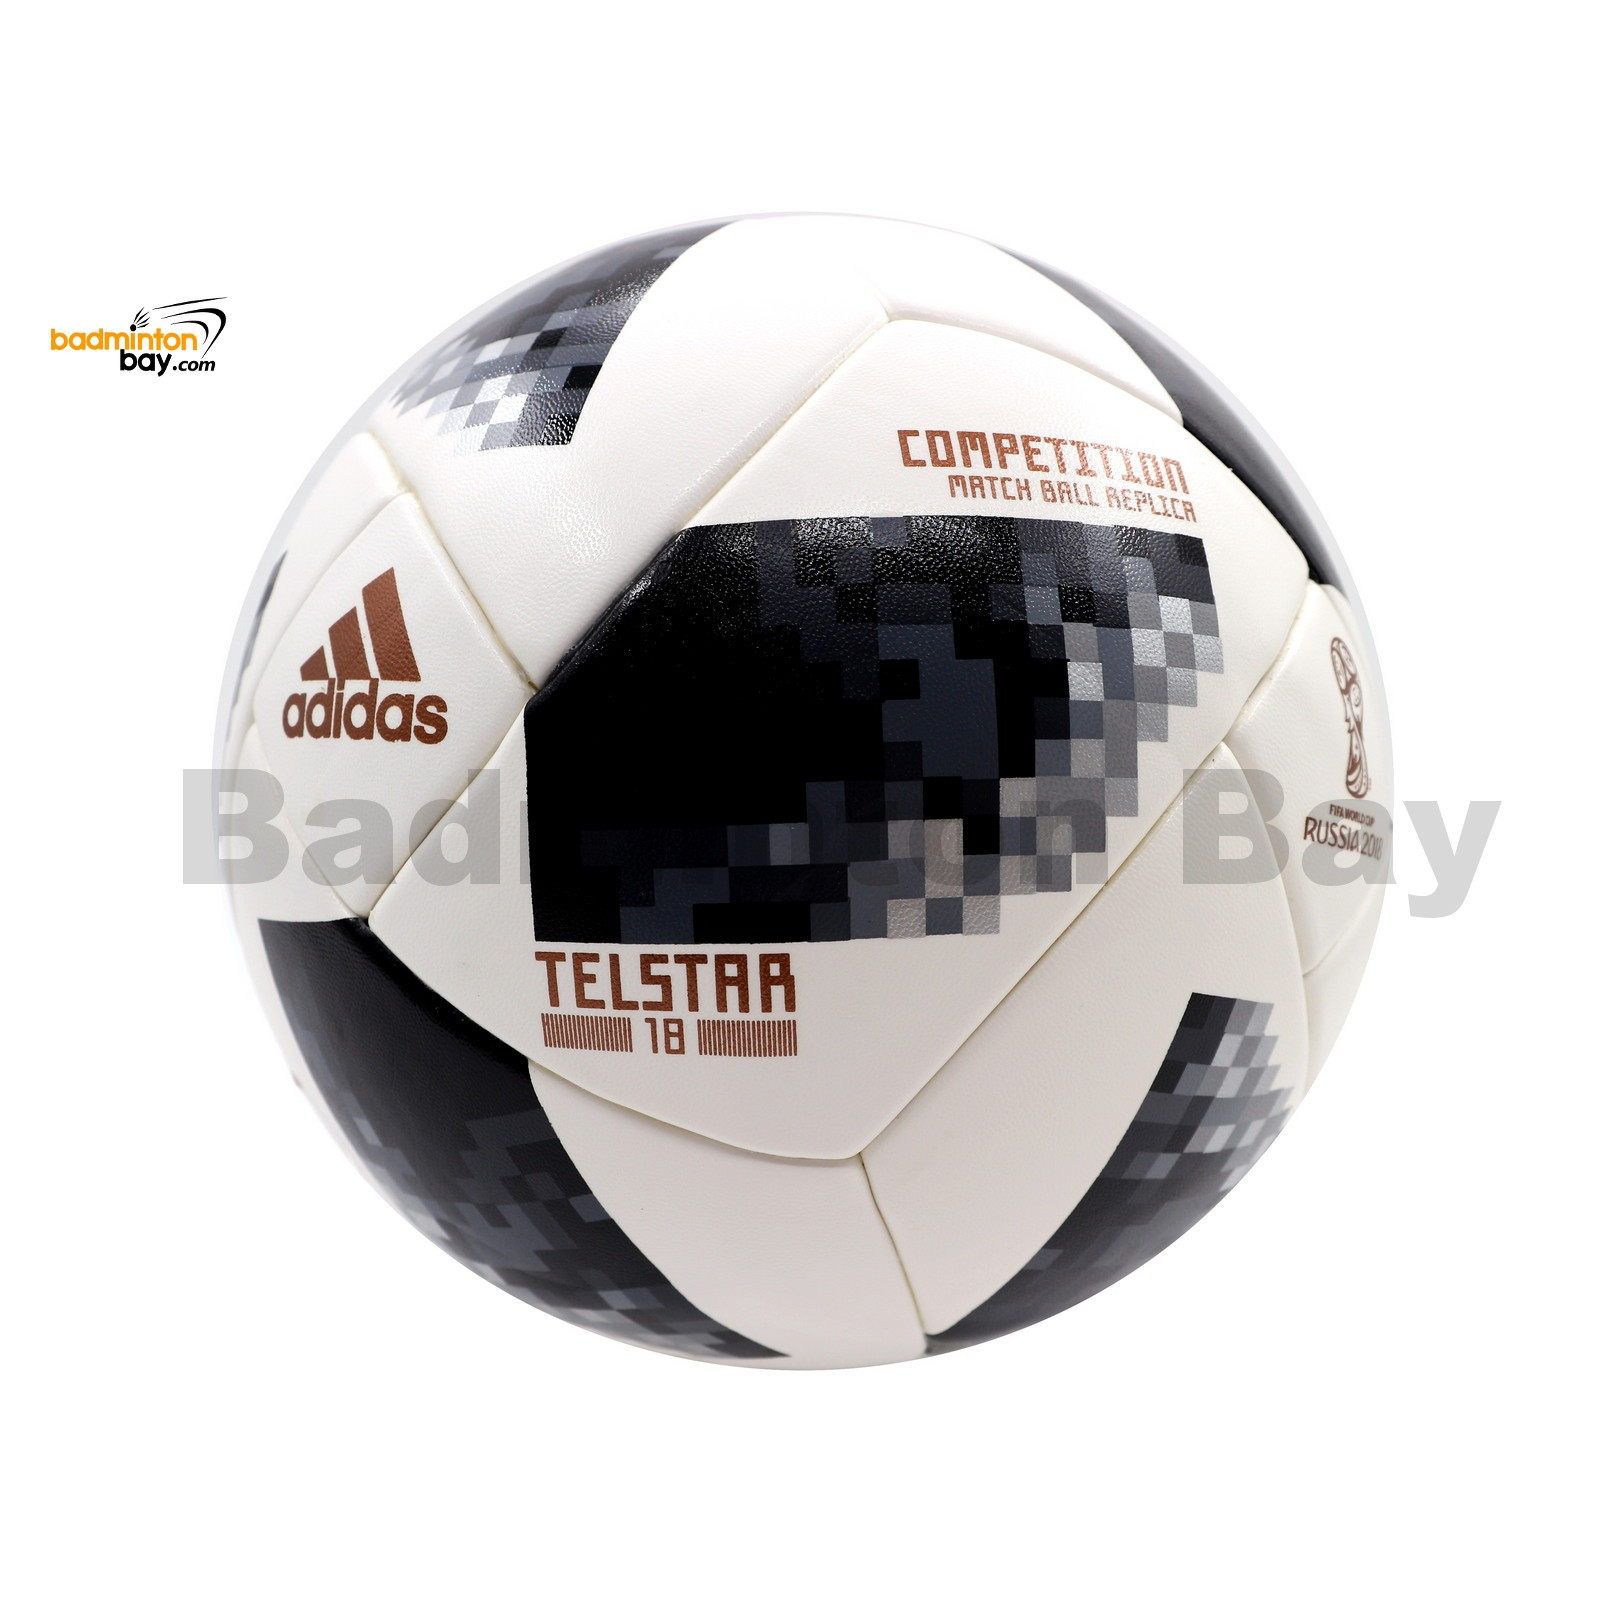 Genuine Adidas FIFA World Cup 2018 Telstar 18 petition Ball Soccer Football Size 5 Russia